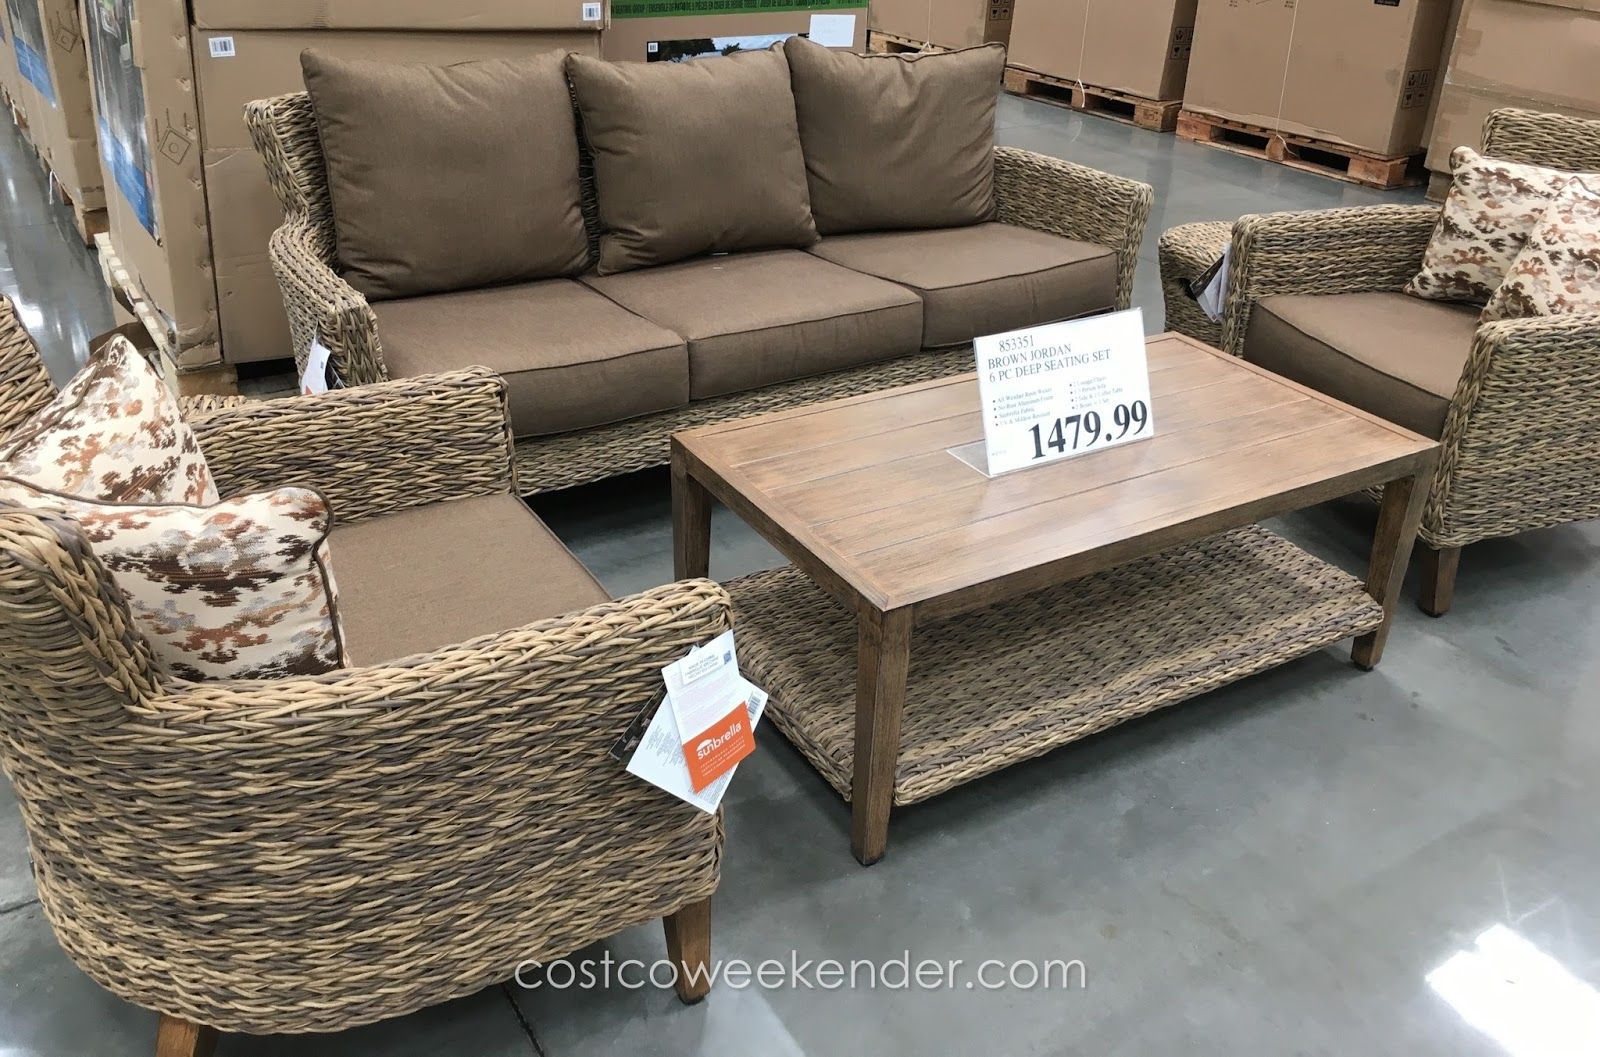 Brown Jordan Patio Furniture Costco